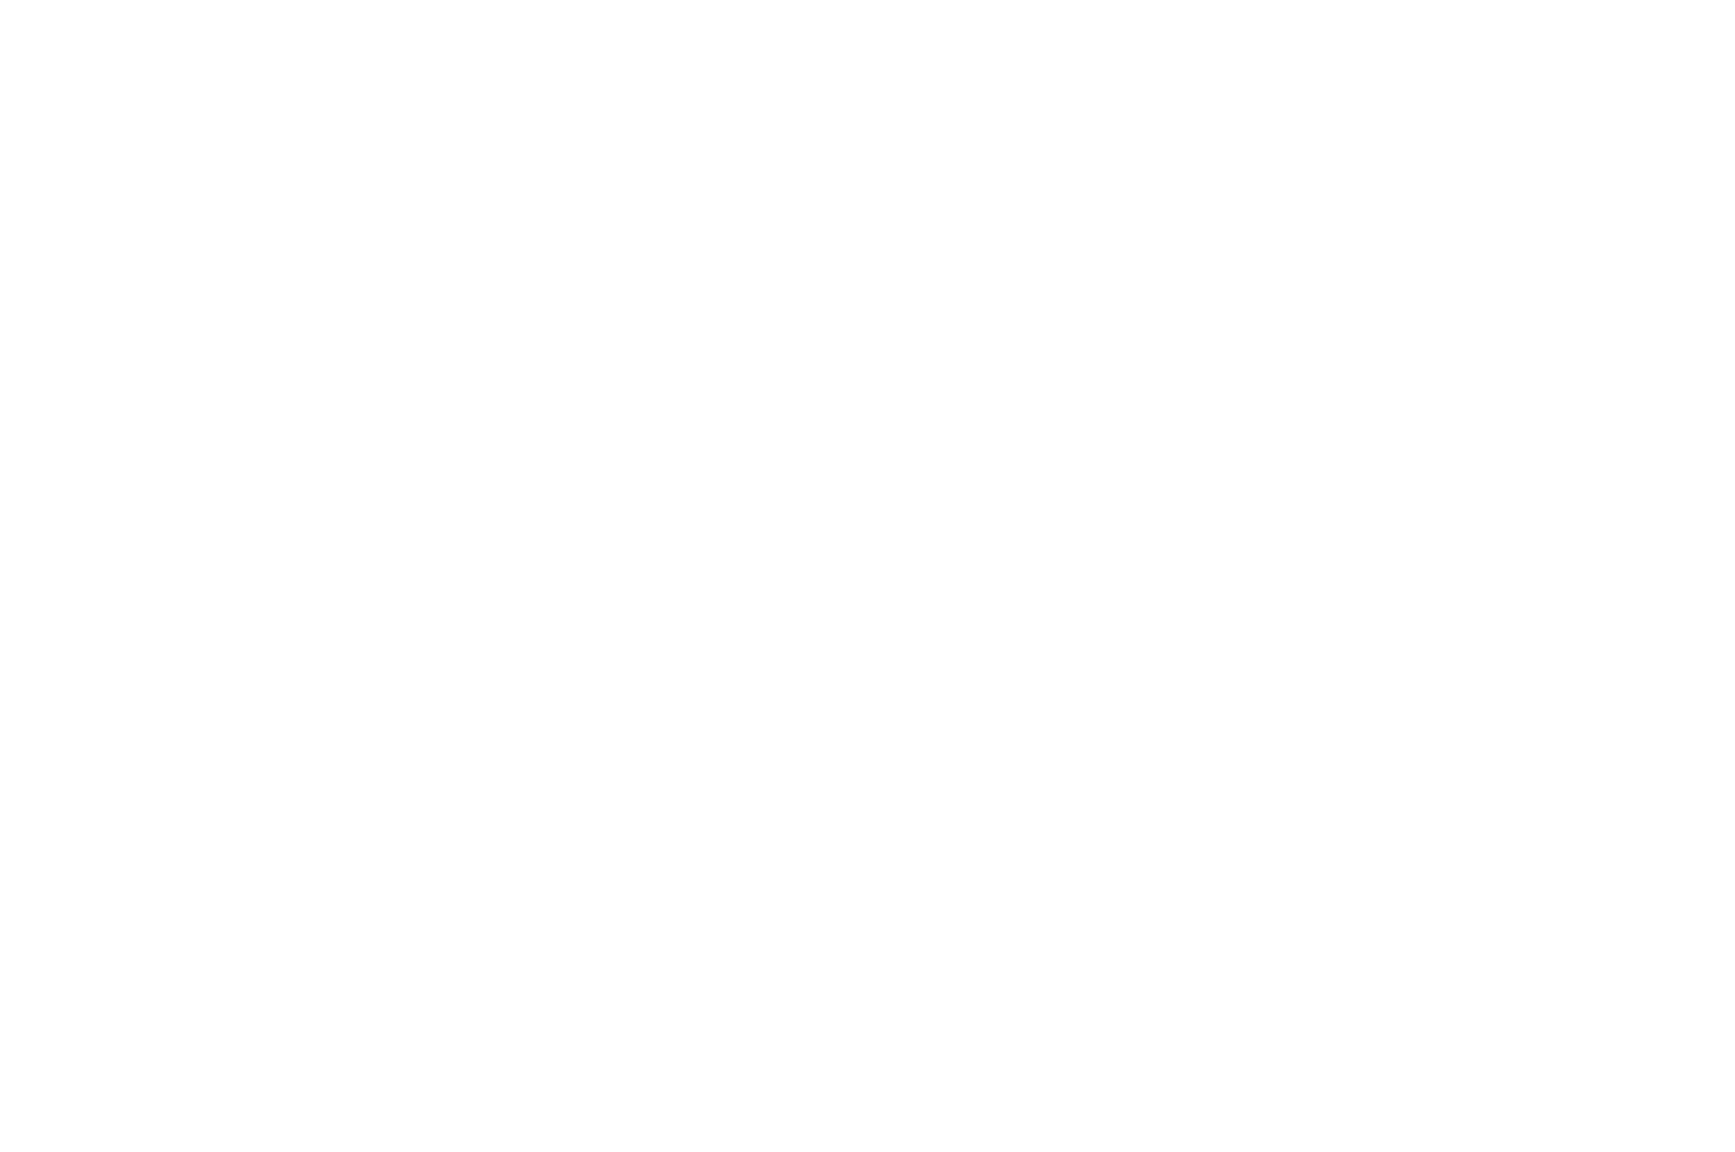 OFFICIAL SELECTION - Reedy Reels - 2016.png